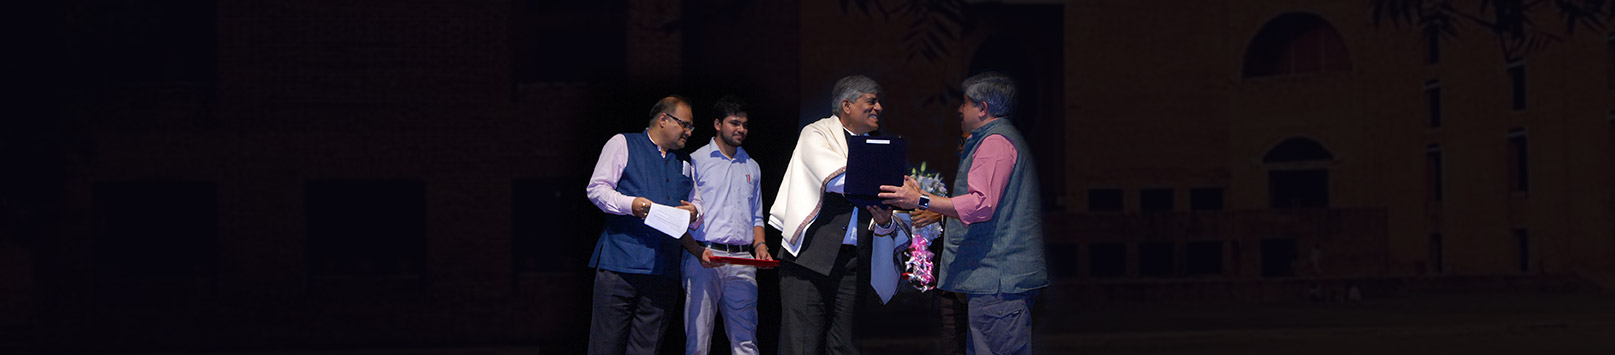 Pradeep Gupta receiving his Distinguished Alumnus Award 2018 from Shrikrishna Kulkarni, Chairperson IIM Calcutta